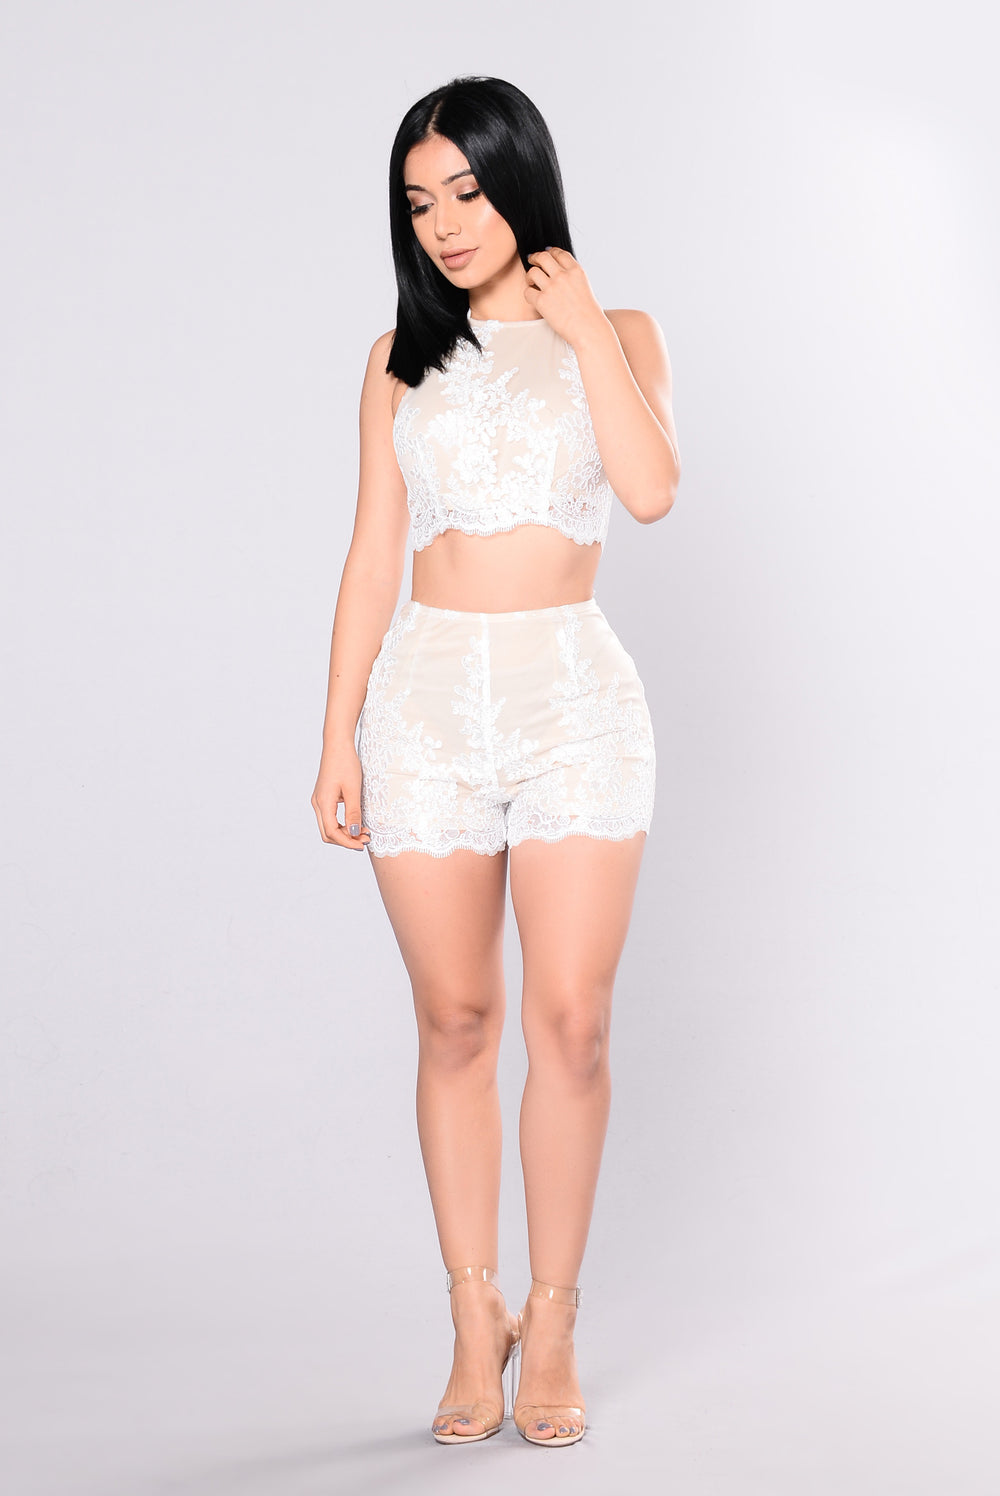 Loyalty To Embroidery Set - White/Nude